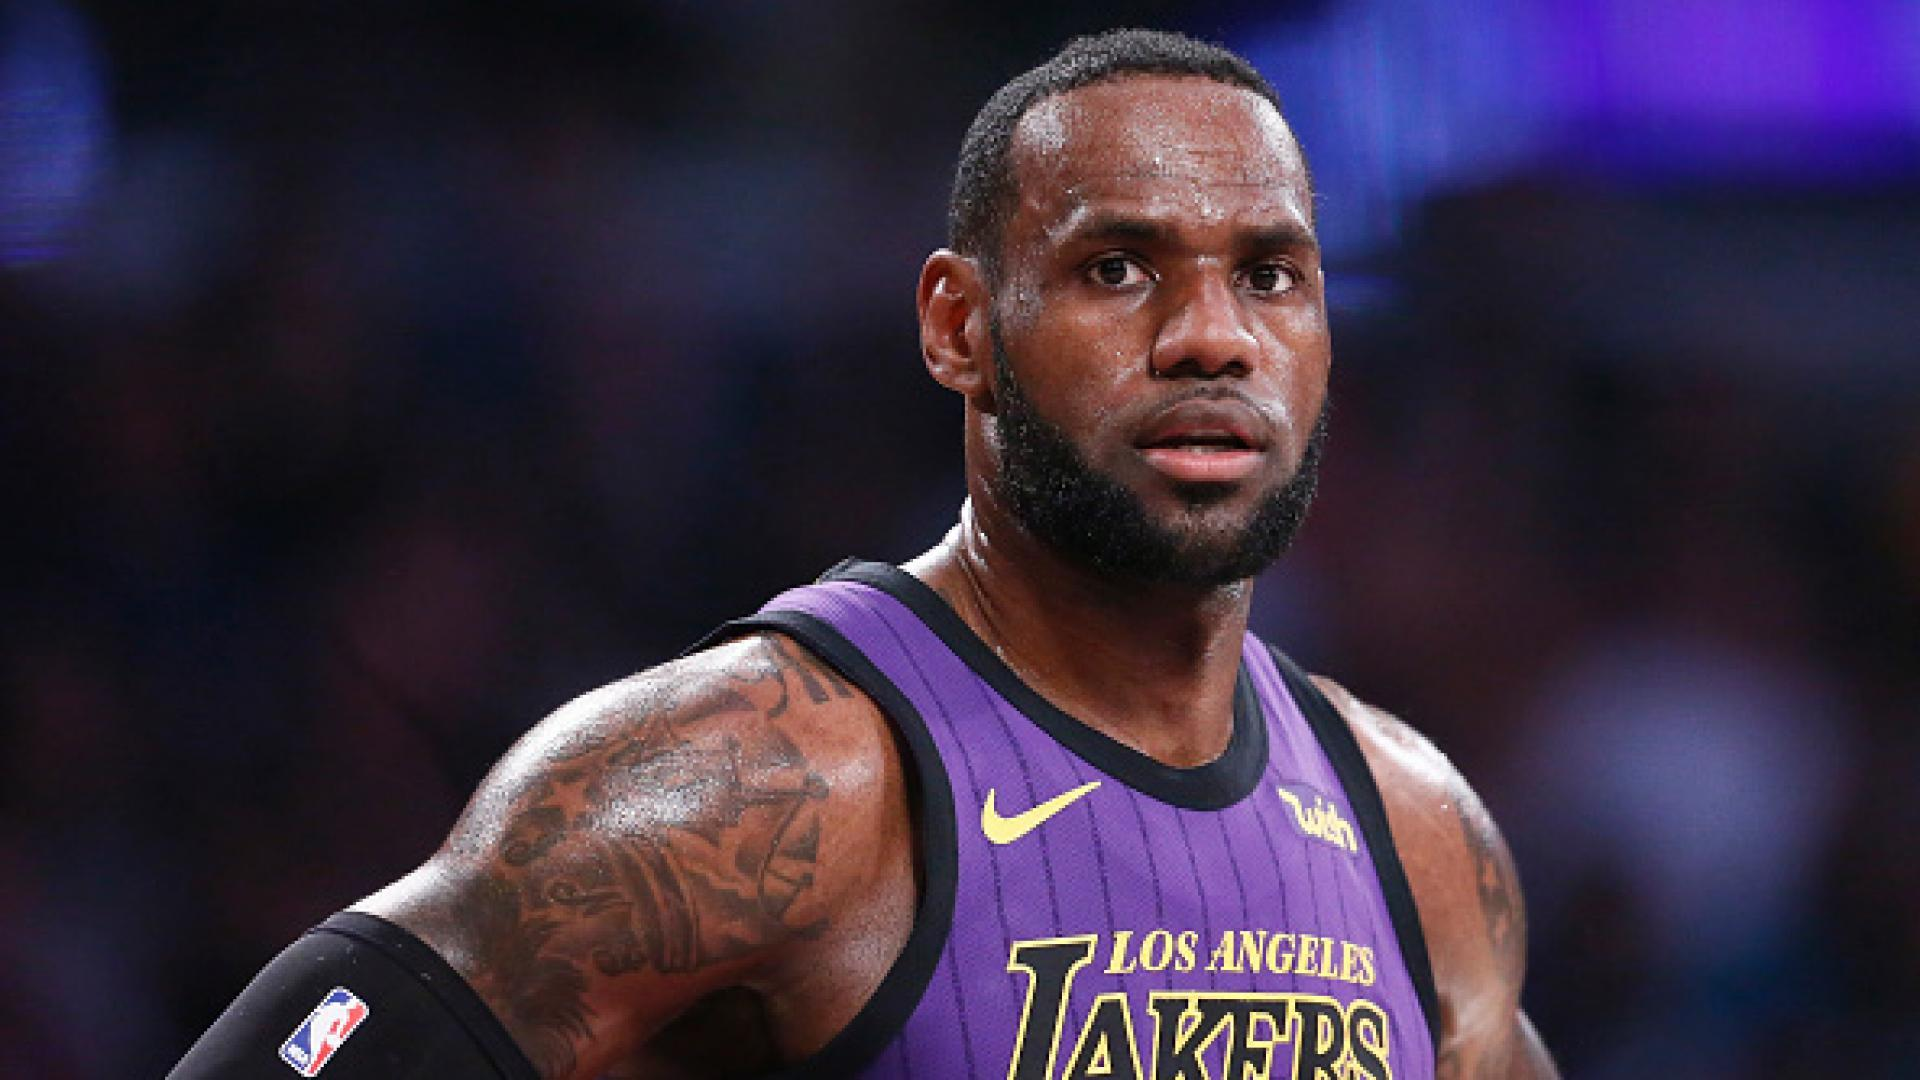 Nba Finals Schedule 2020 Who will be in the 2020 West Finals? | NBA.com